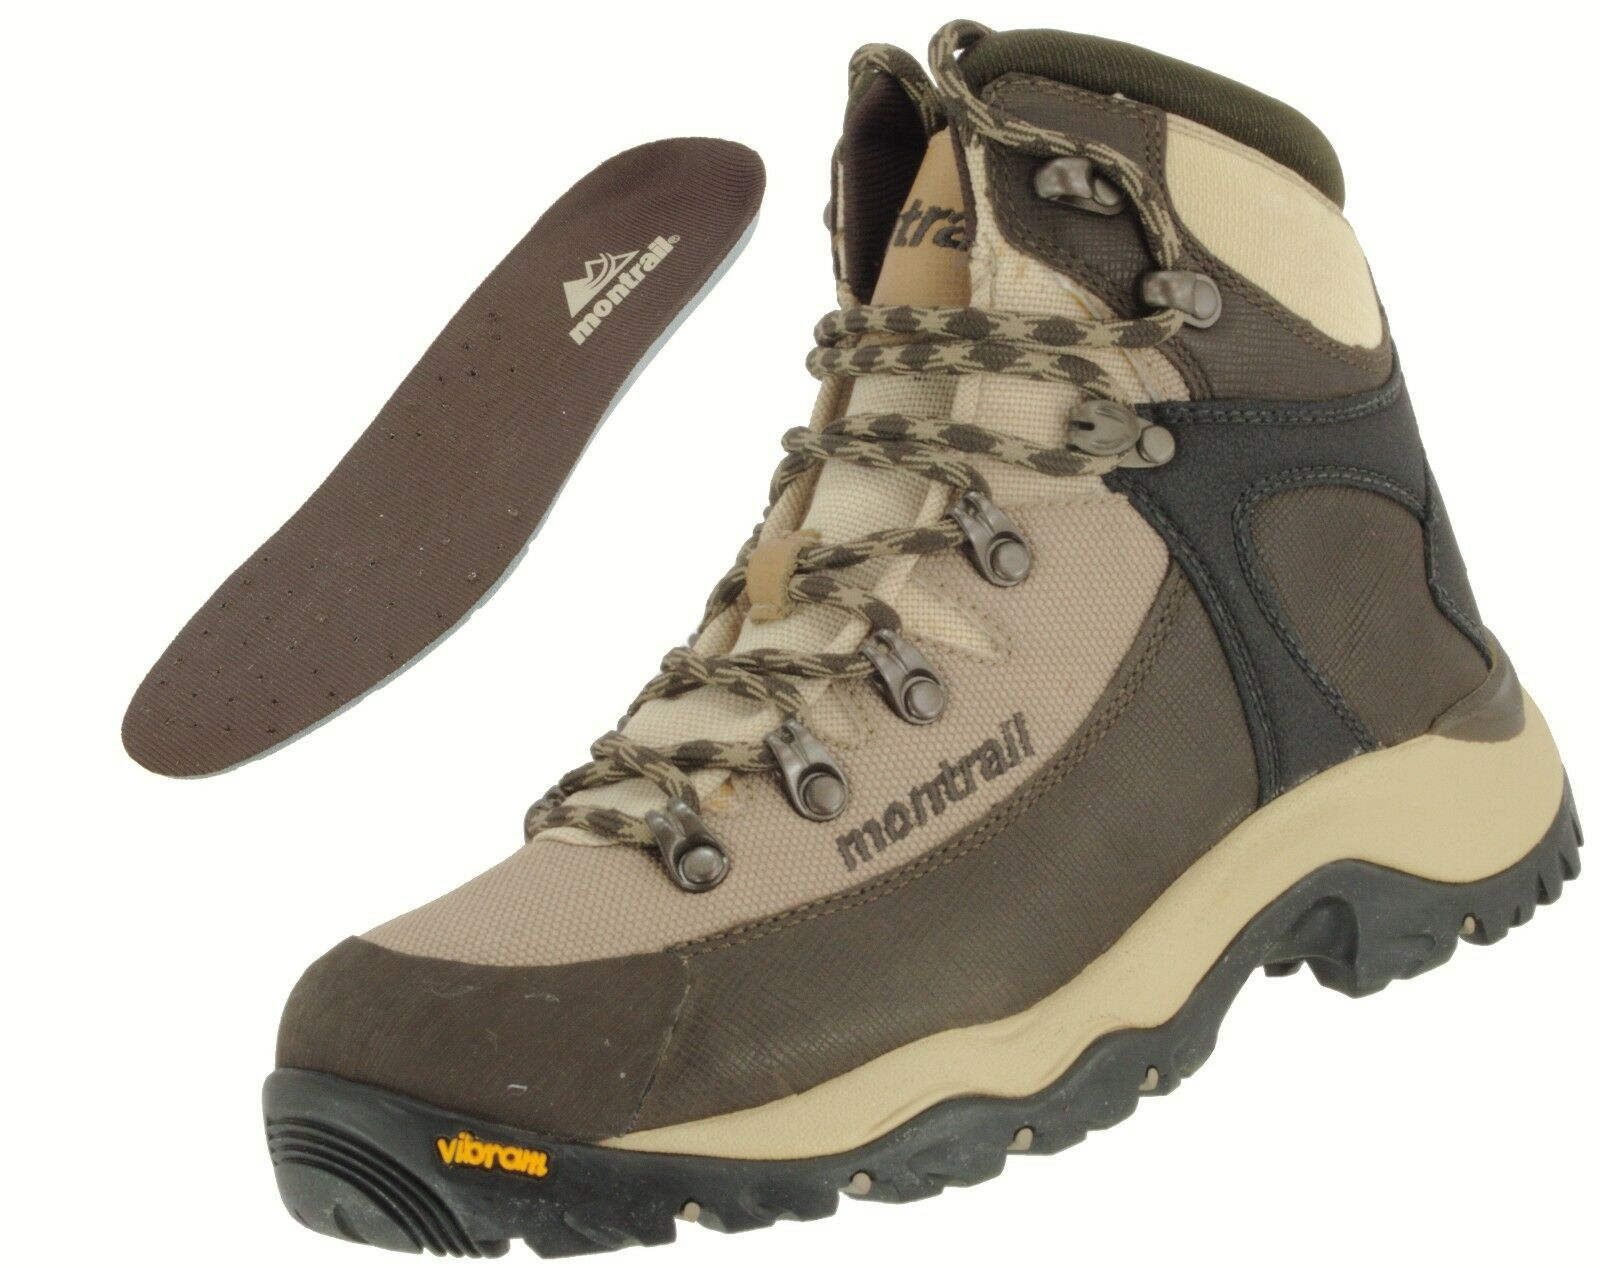 MONTRALA PROVKVINNORS FEATHER PEAK CORDURA backpackNING TRAIL HICKNING BOOT US 7